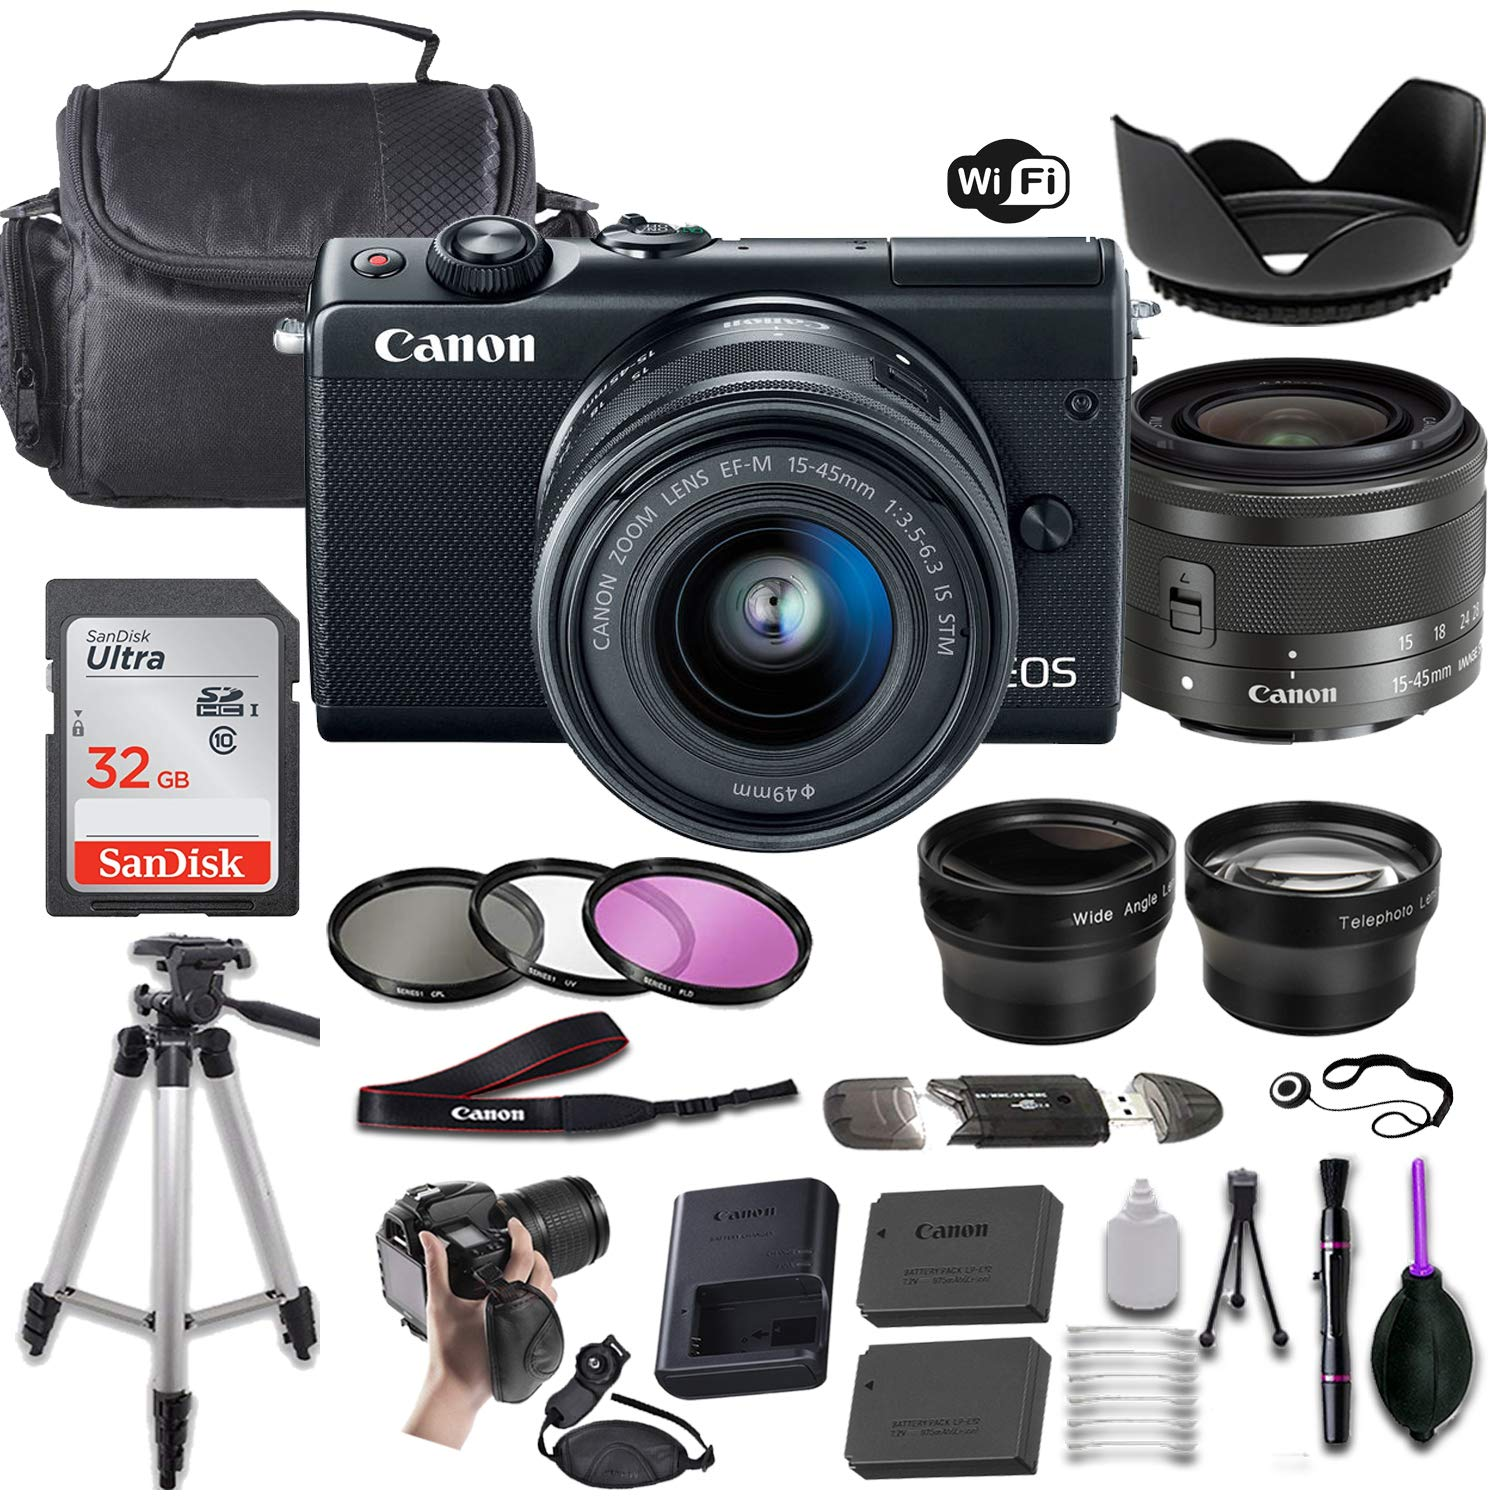 Canon EOS M100 Mirrorless Digital Camera (Black) w/EF-M 15-45mm f/3.5-6.3 is STM + Wide-Angle and Telephoto Lenses + Portable Tripod + Memory Card + Deluxe Accessory Bundle by Canon